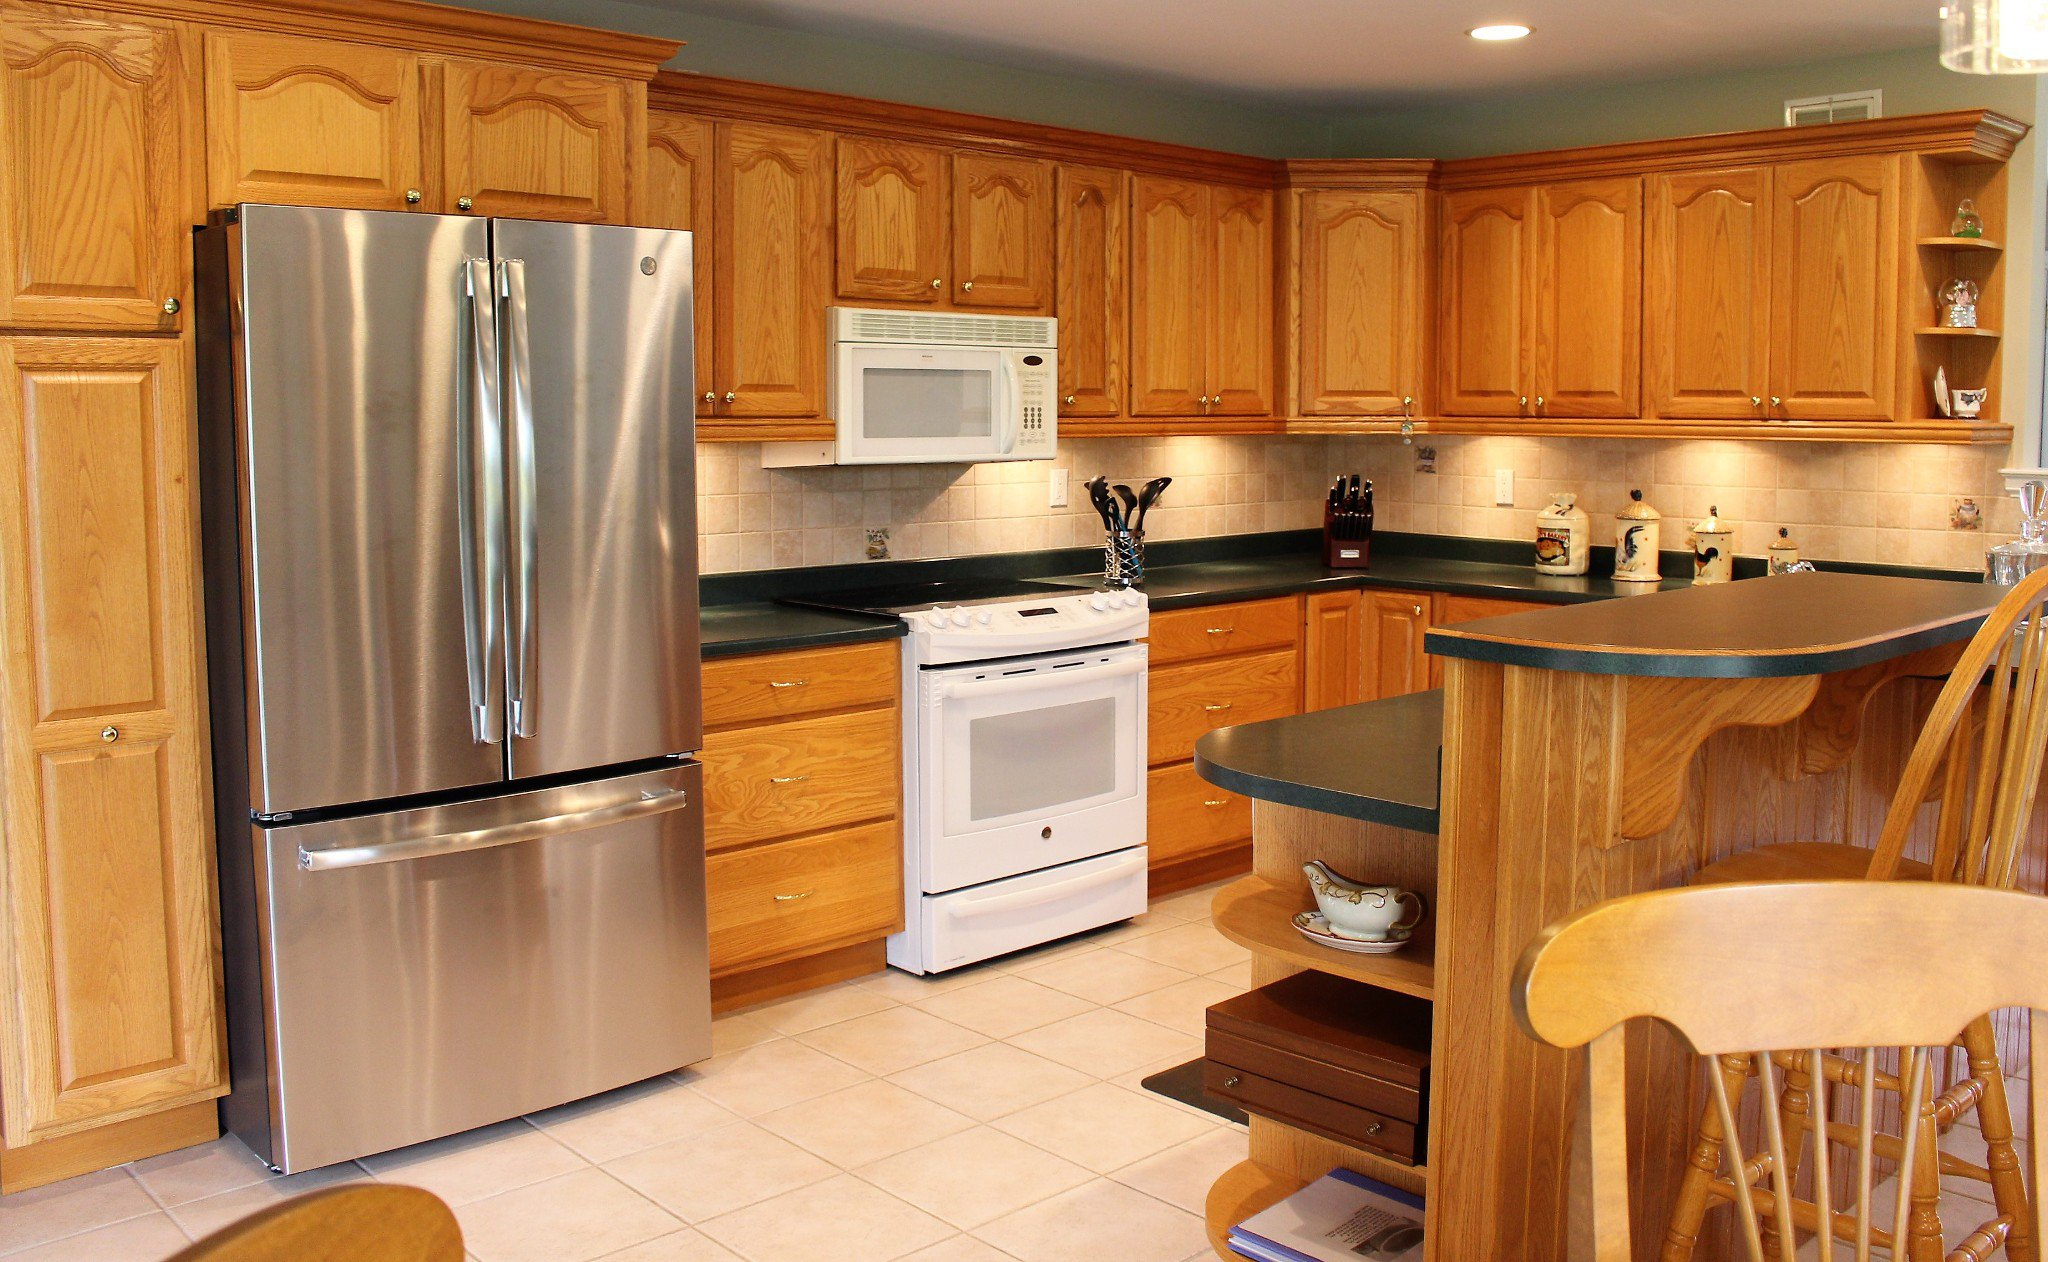 Photo 15: Photos: 159 Nawautin Drive in Grafton: Residential Detached for sale : MLS®# 40012652